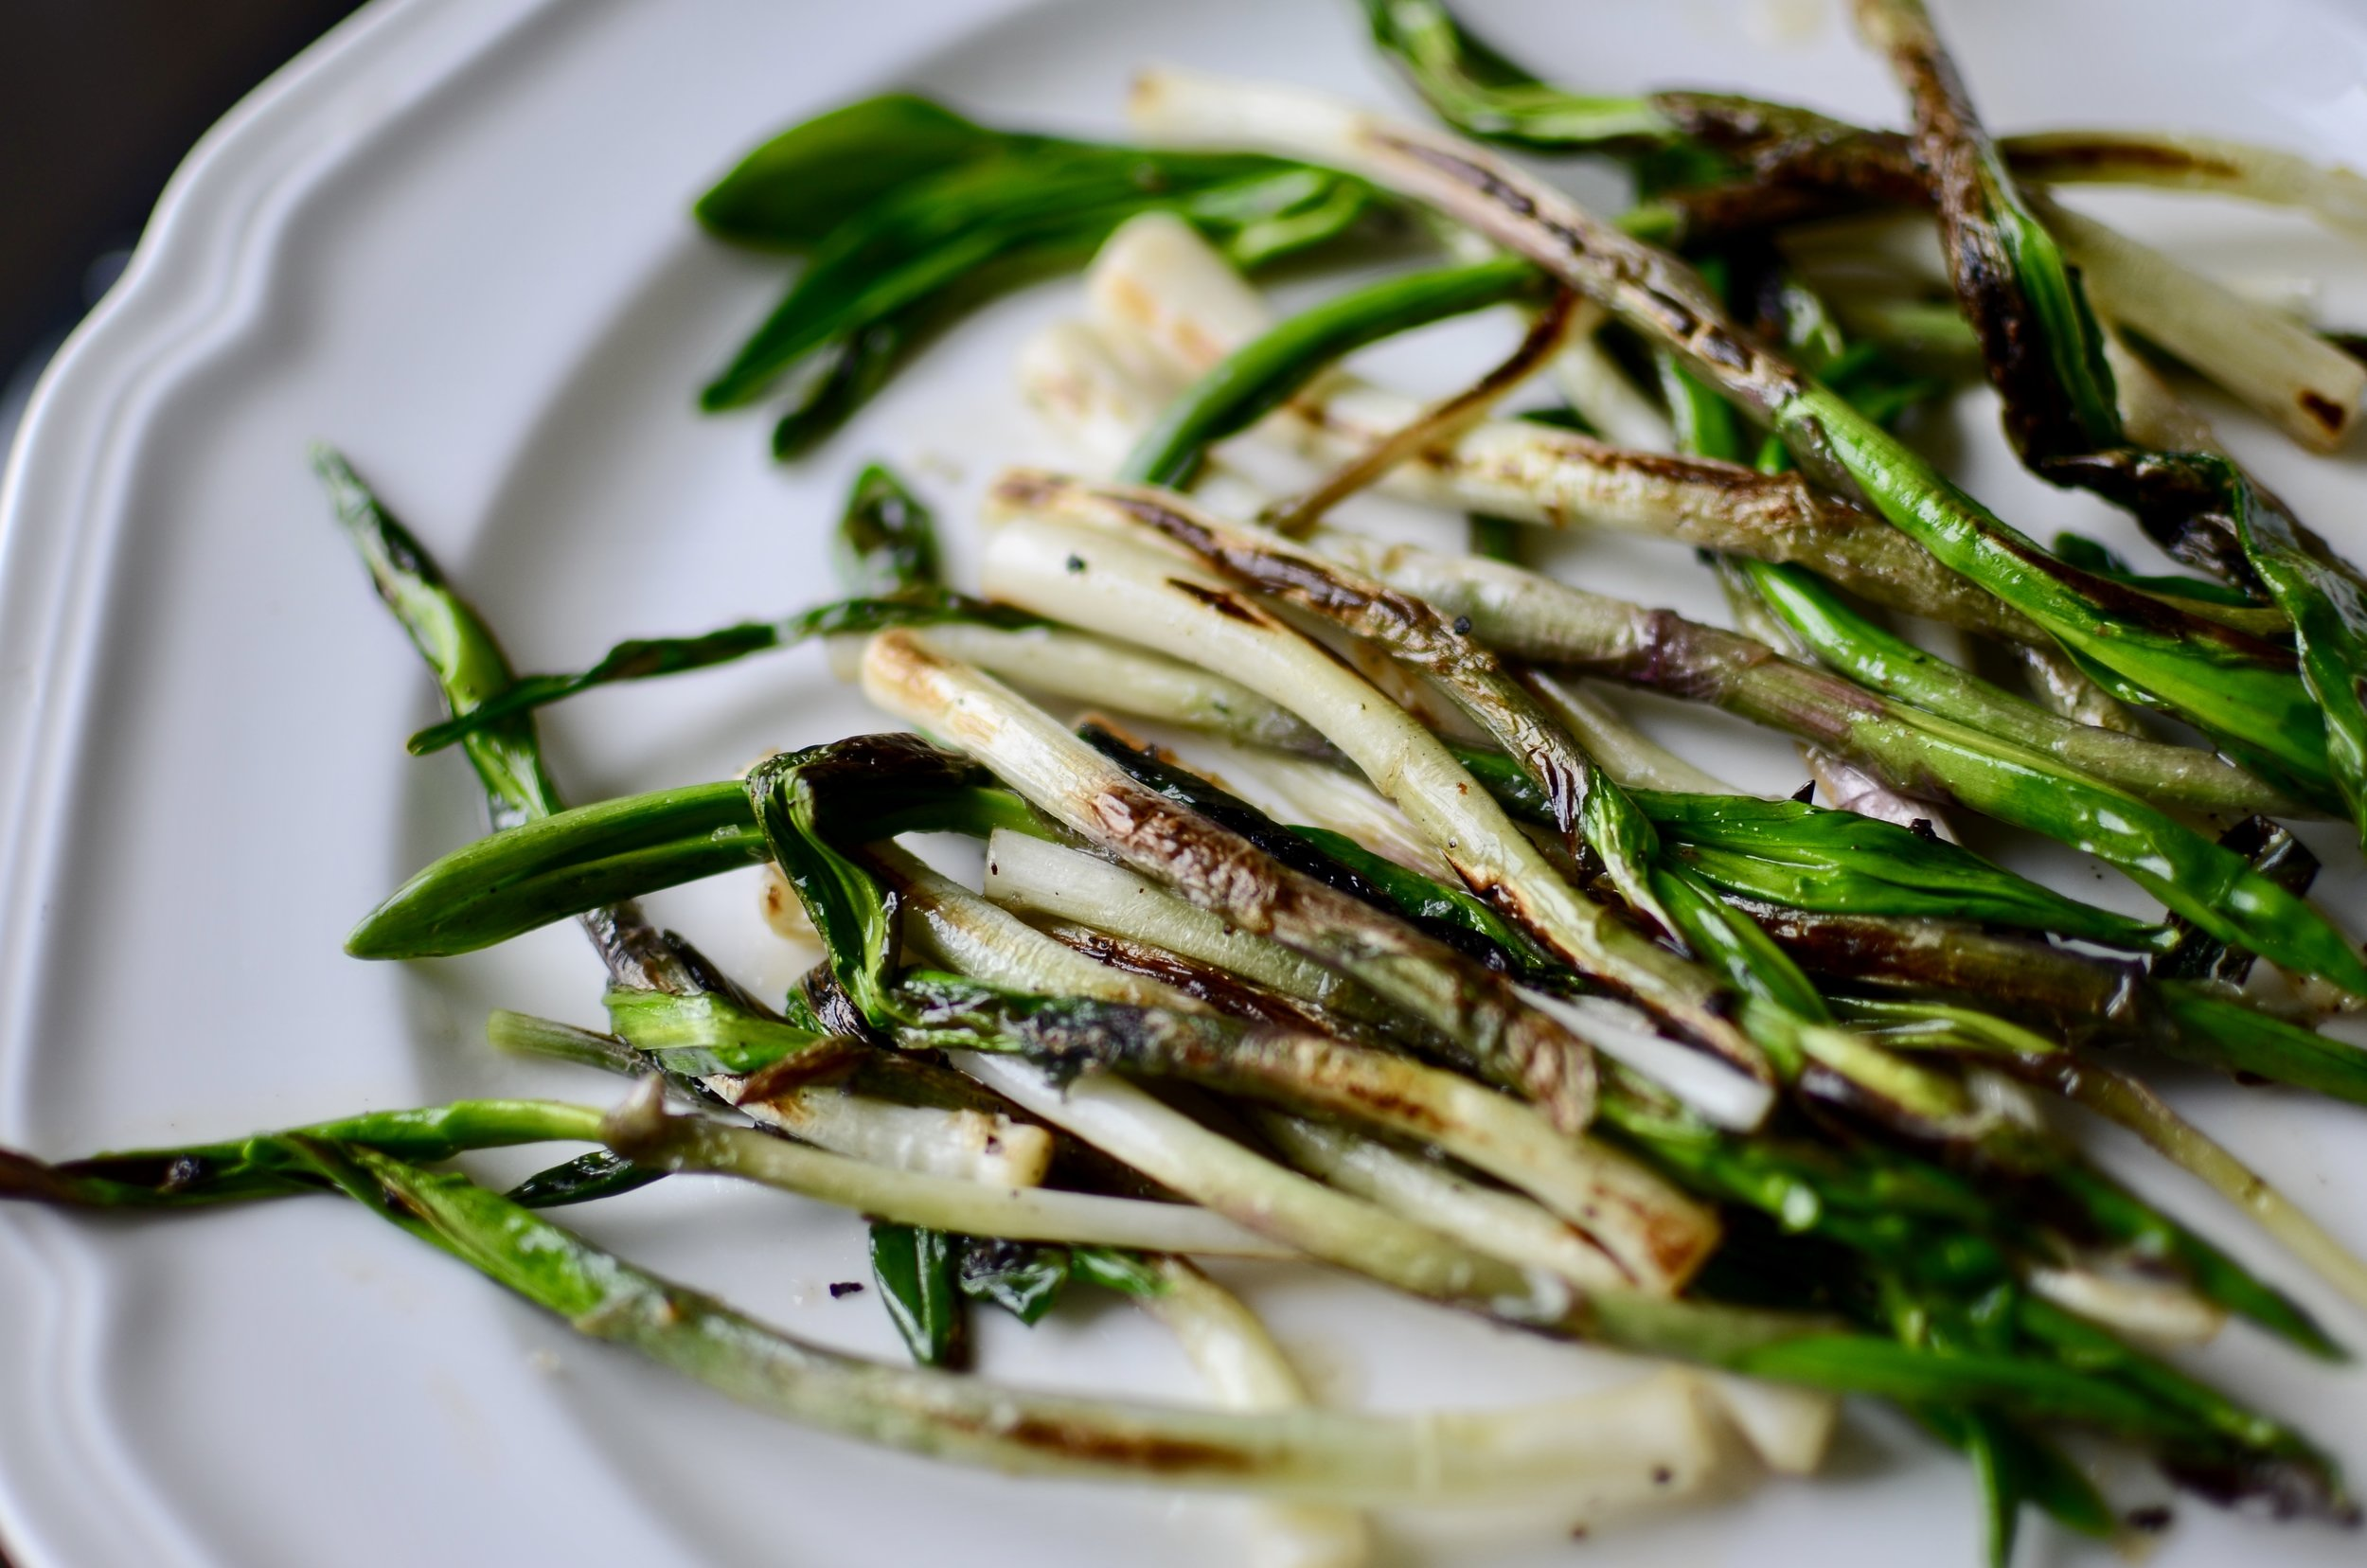 how to cook ramps - ButterYum. what to do with ramps. ramps recipes. cooking with ramps. recipes for ramps. recipes to use ramps. grilling ramps. sautéing ramps. cooking ramps on the stovetop. skillet ramps recipe.